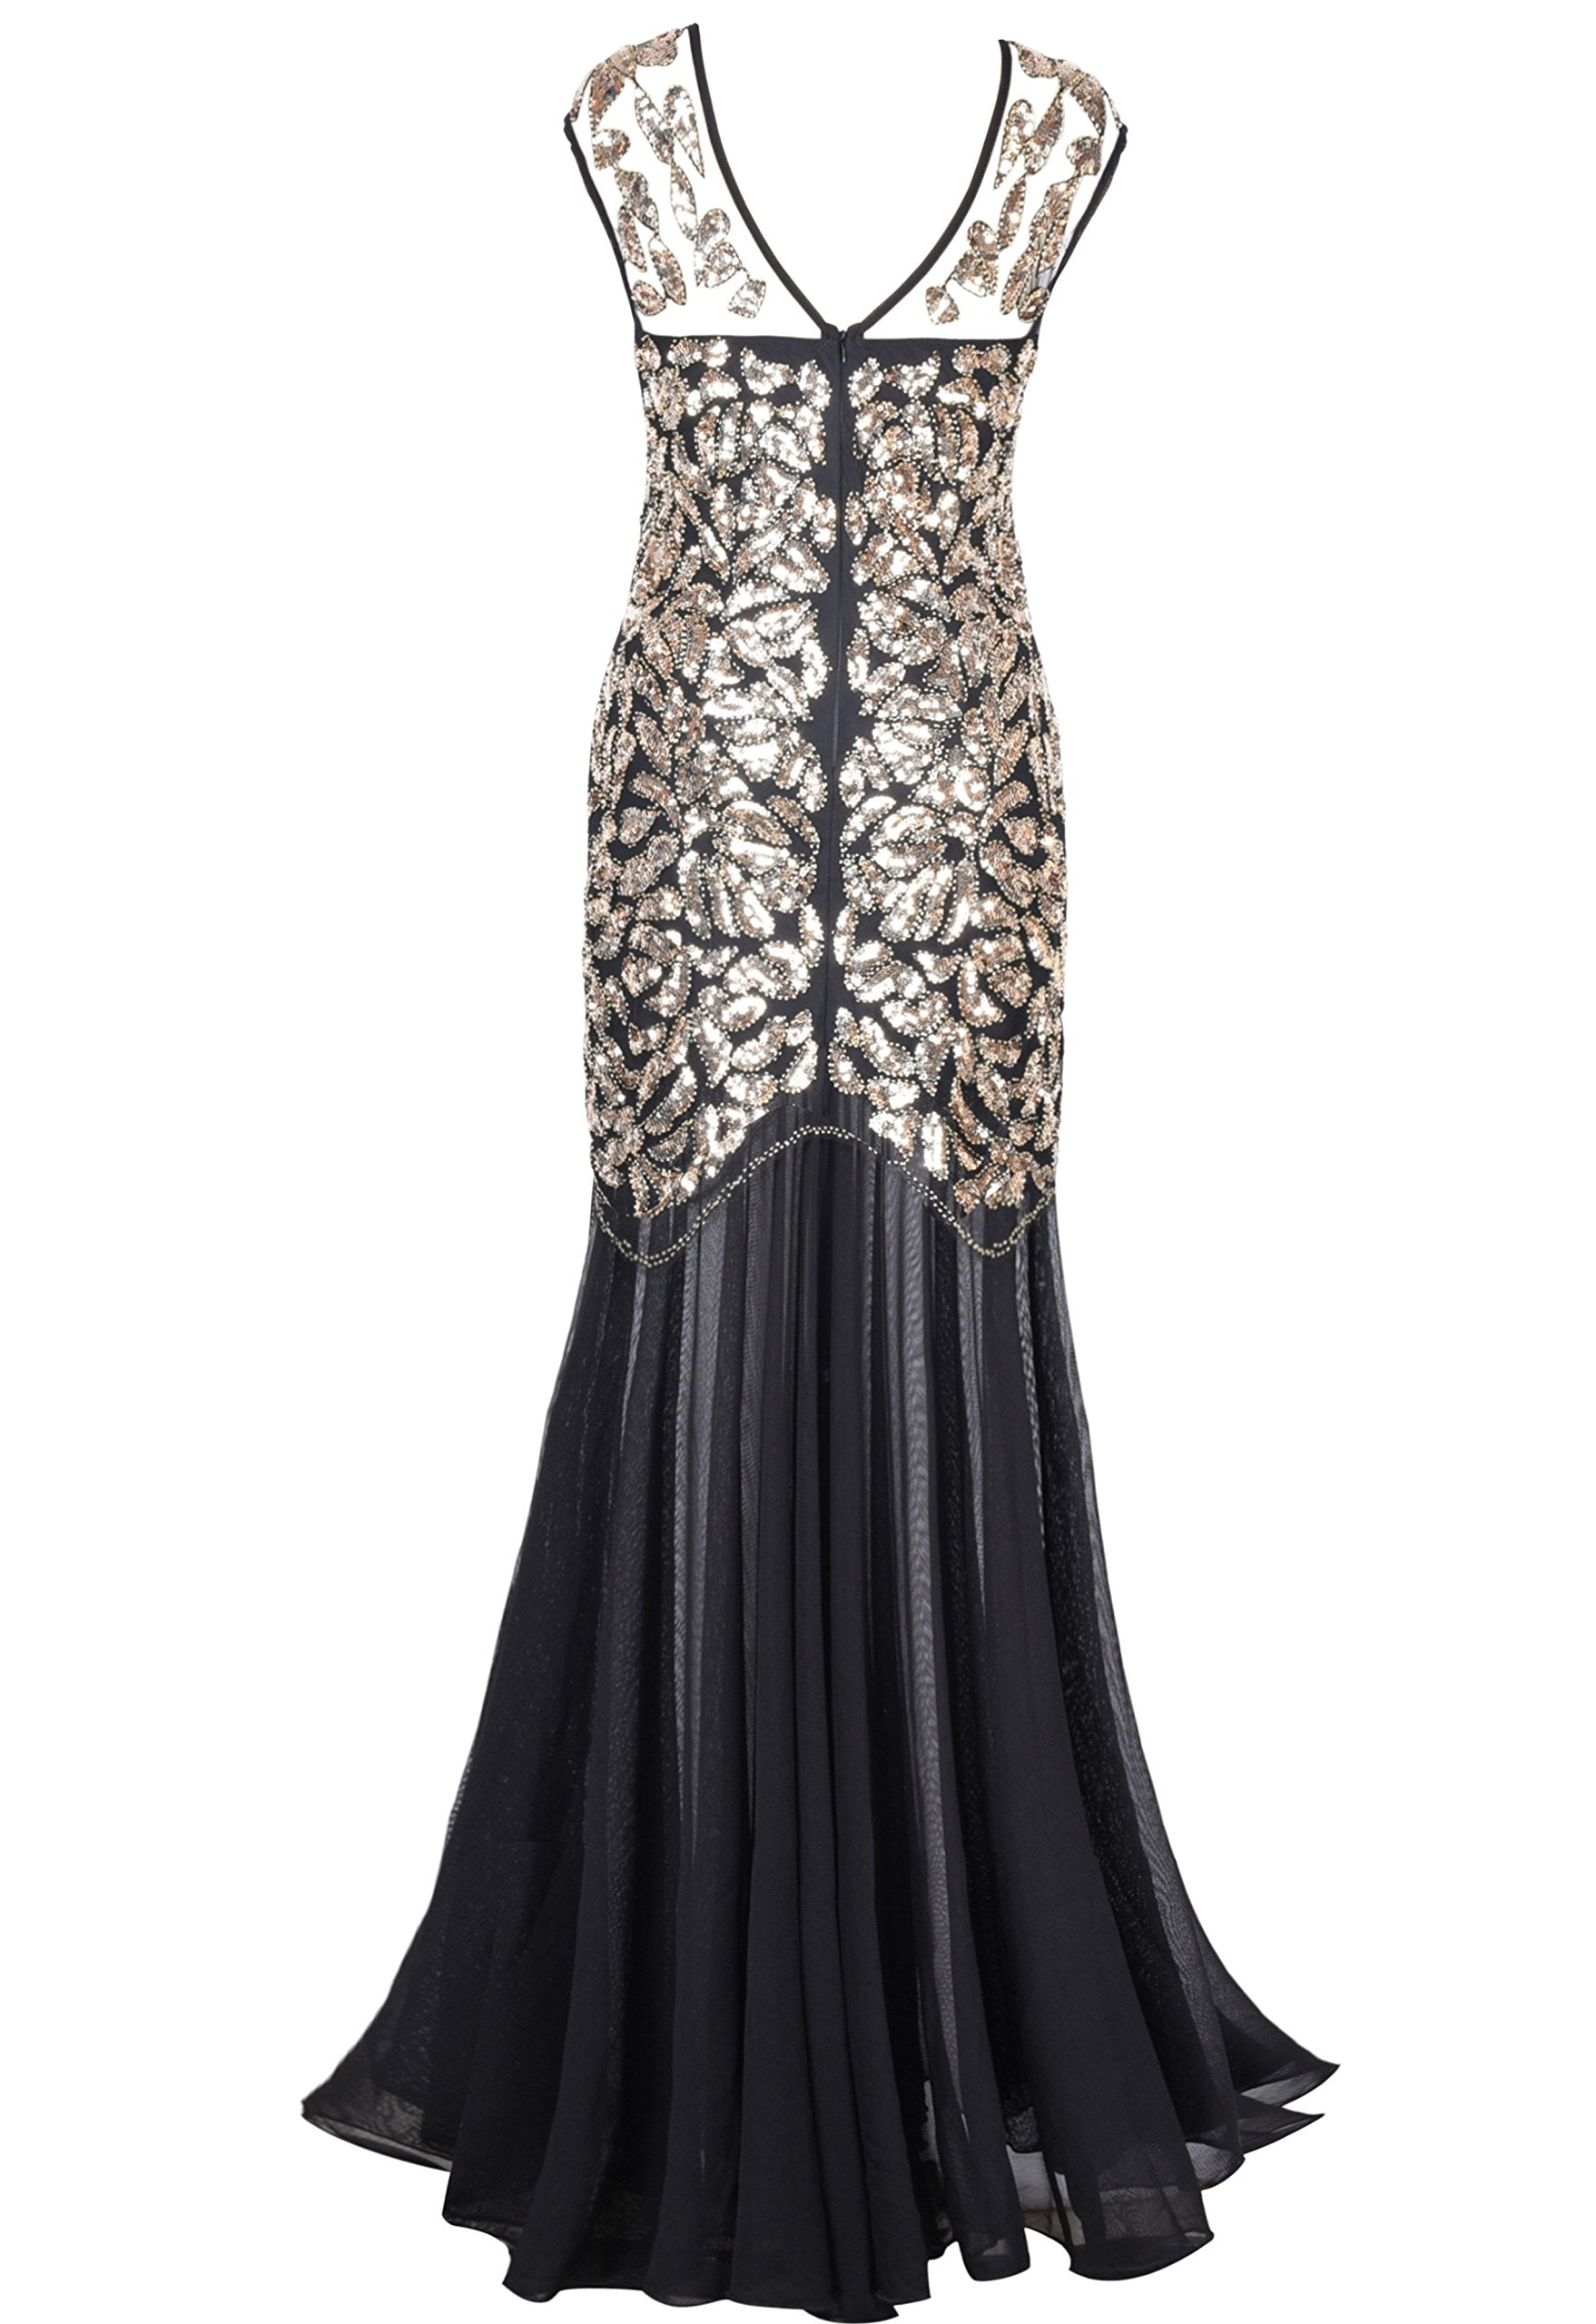 Masquerade Ball Gown 1920s Black Sequin Gatsby Maxi Long Evening Prom Dress